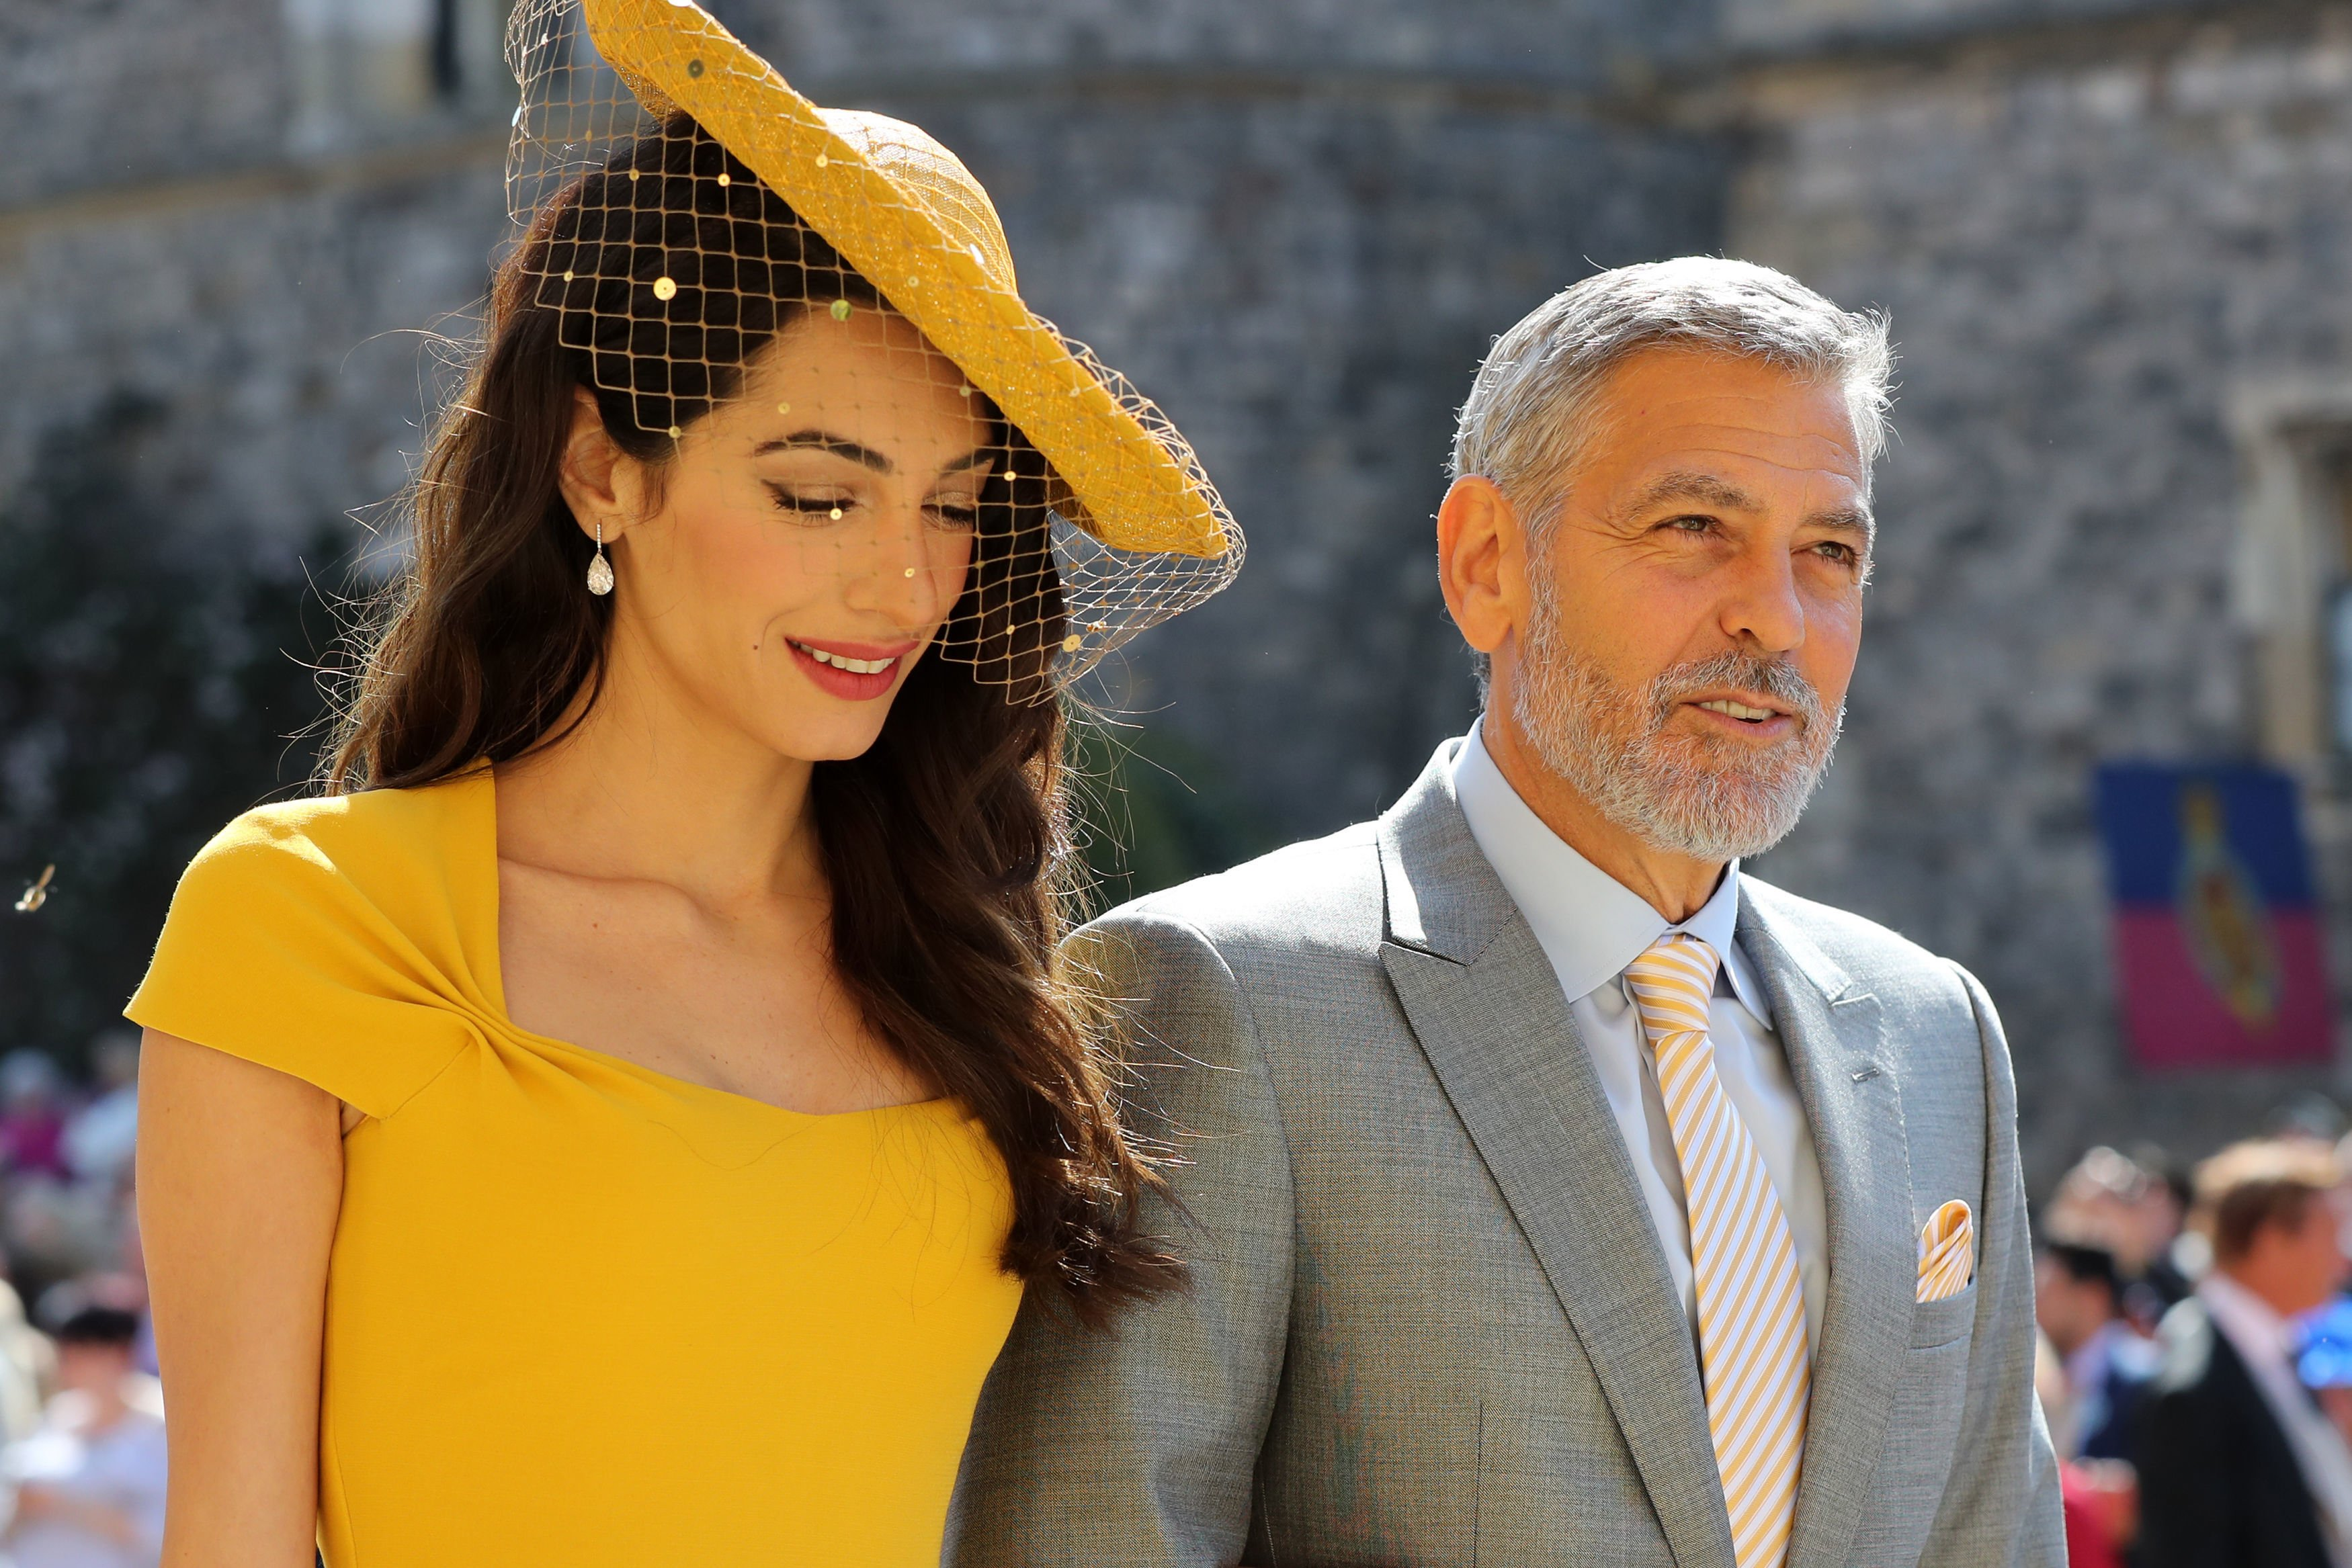 Photo of Amal Clooney and George Clooney | Photo: Getty Images